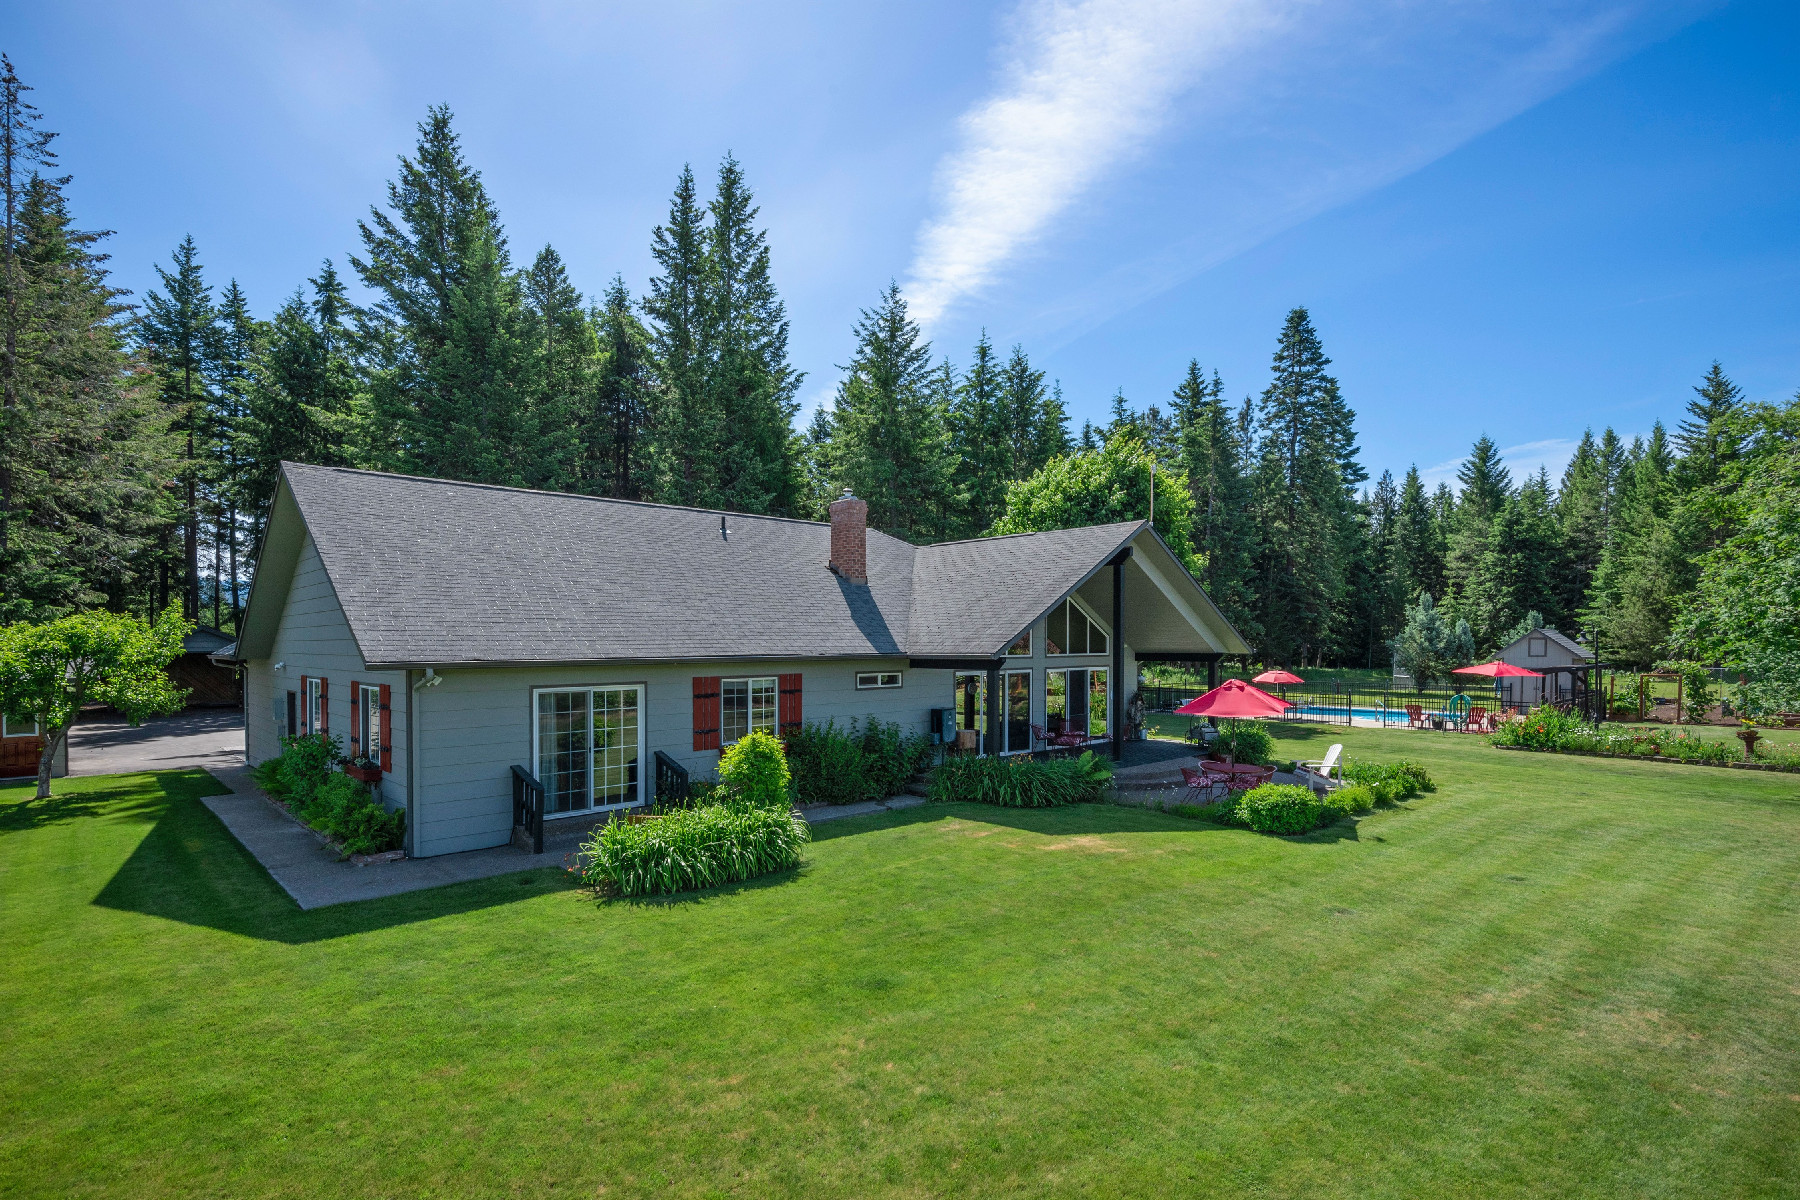 Single Family Homes for Sale at 1887 Homestead Loop Bonners Ferry, Idaho 83805 United States